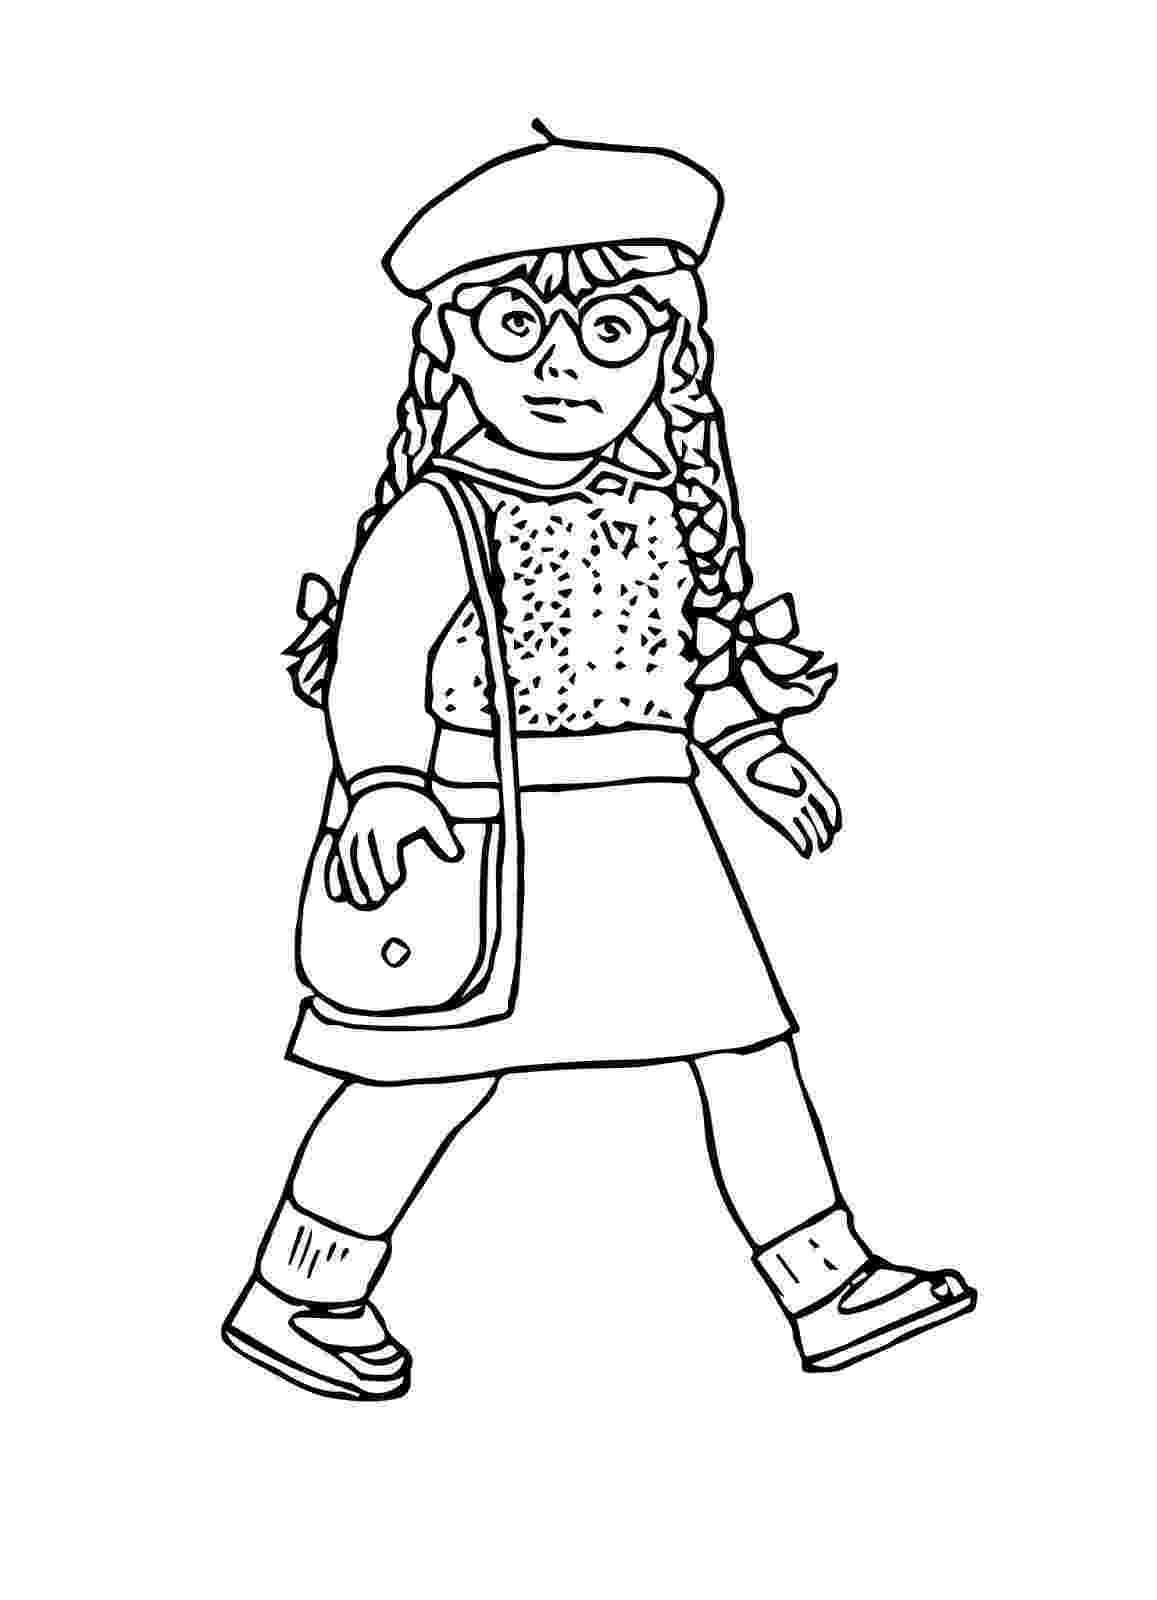 girl colering pages american girl coloring pages best coloring pages for kids colering pages girl